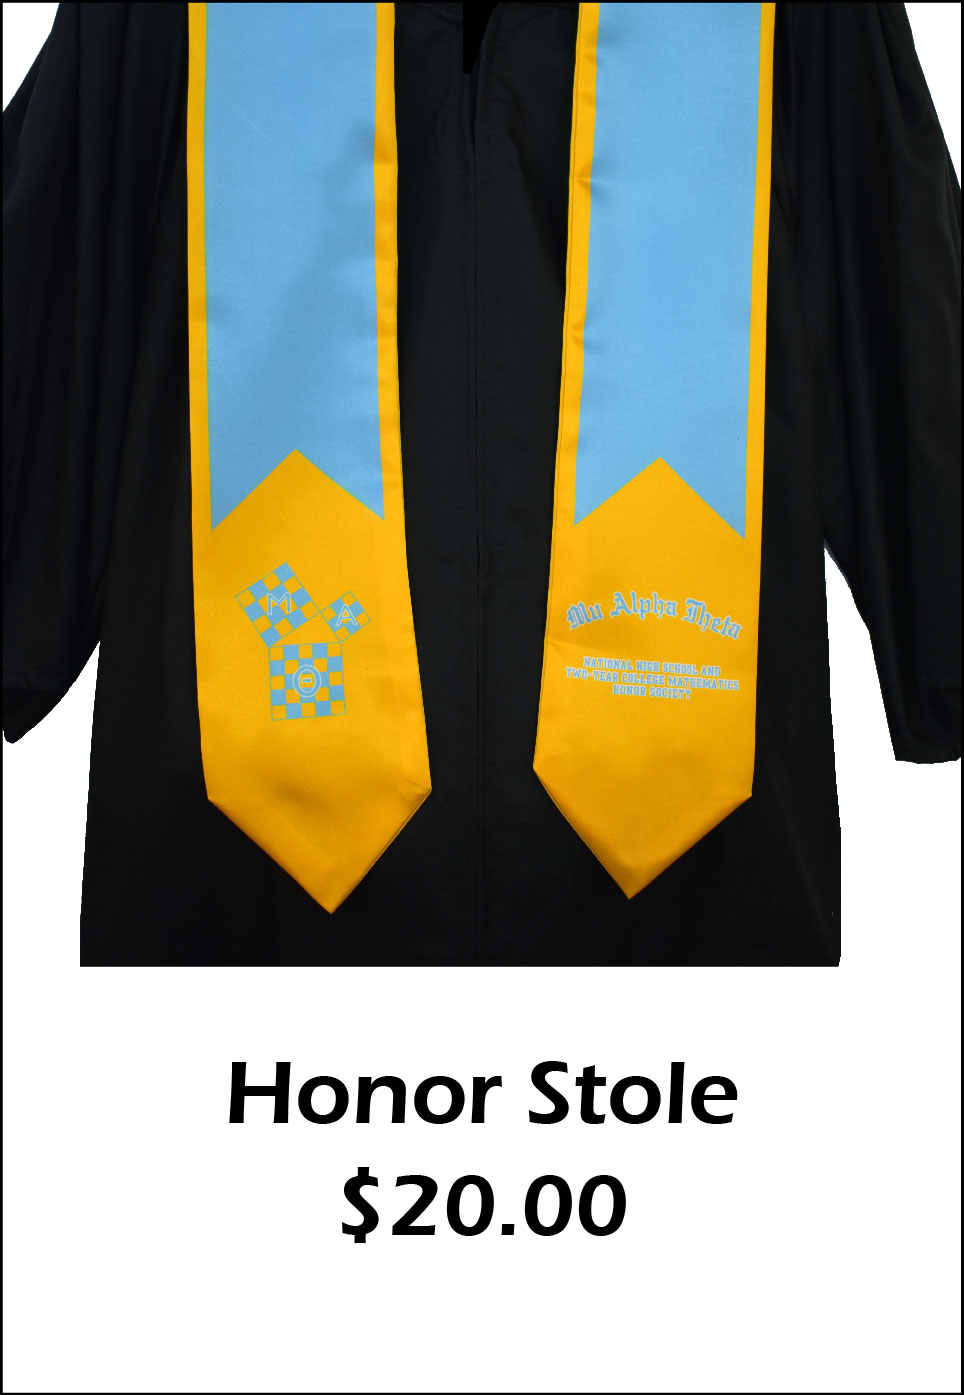 MAT Honor Stole - $20